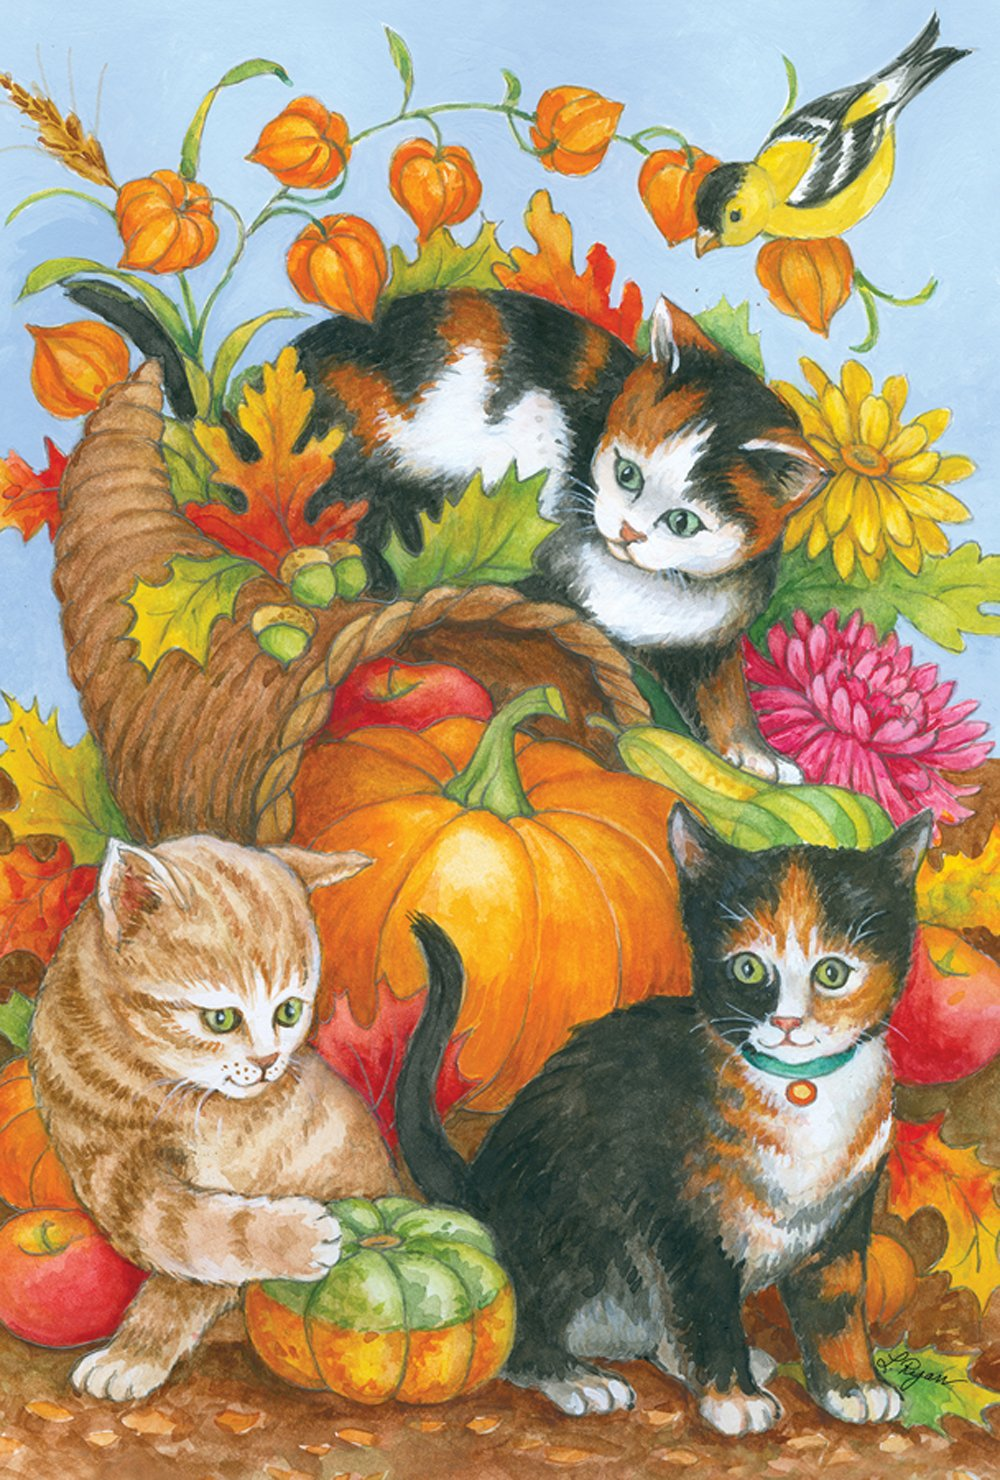 Toland Home Garden Kitten Cornucopia 12.5 x 18 Inch Decorative Fall Kitty Cat Pumpkin Garden Flag